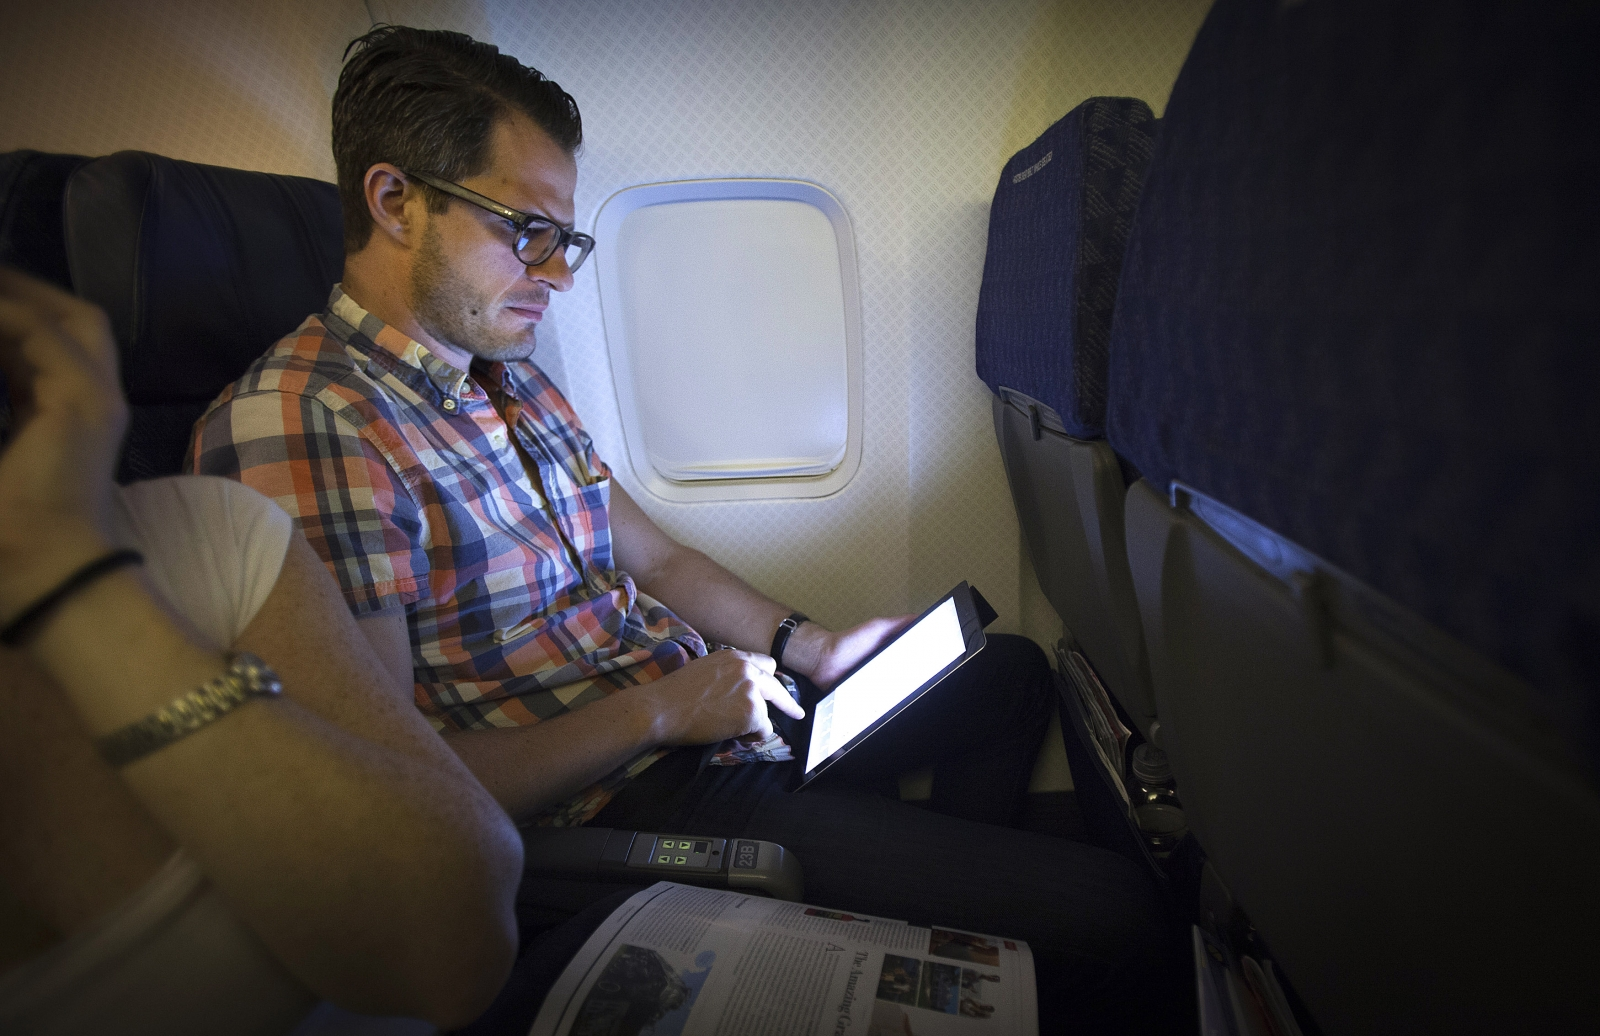 Man using tablet on an airplane